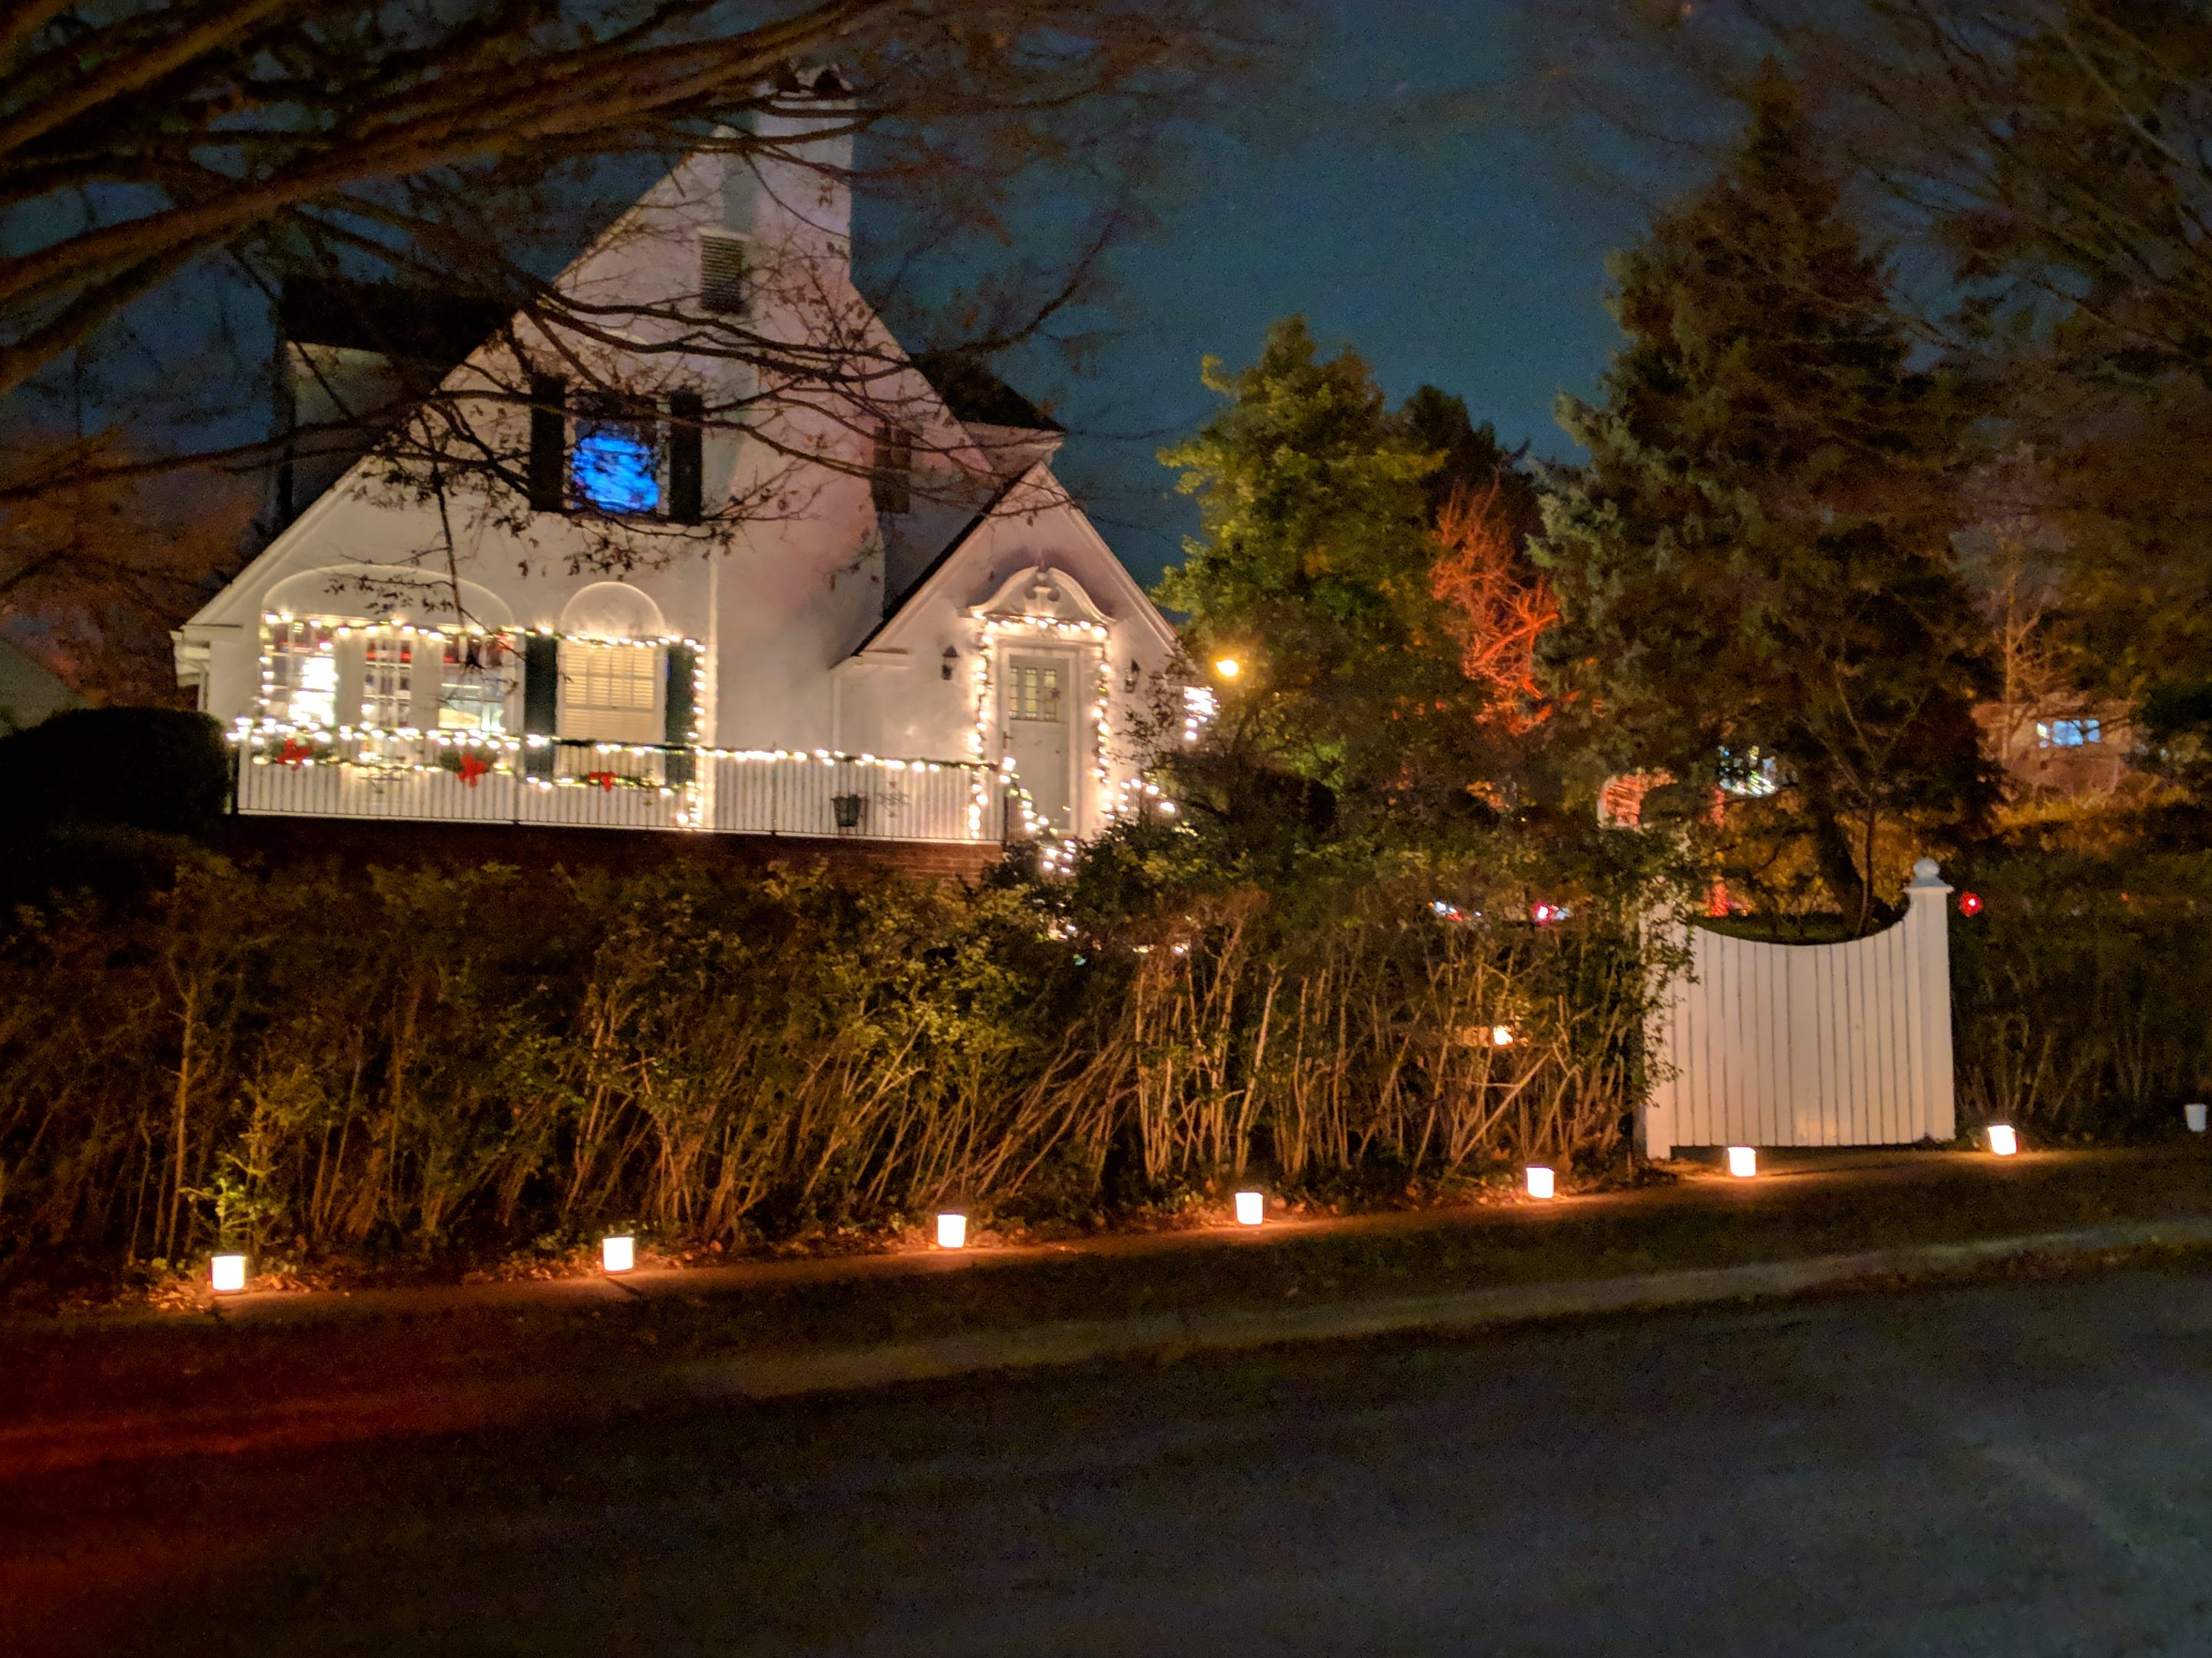 Passersby viewed a beautiful Christmas tradition in the Springdale neighborhood of York recently, where homeowners lit 1,750 luminaries.